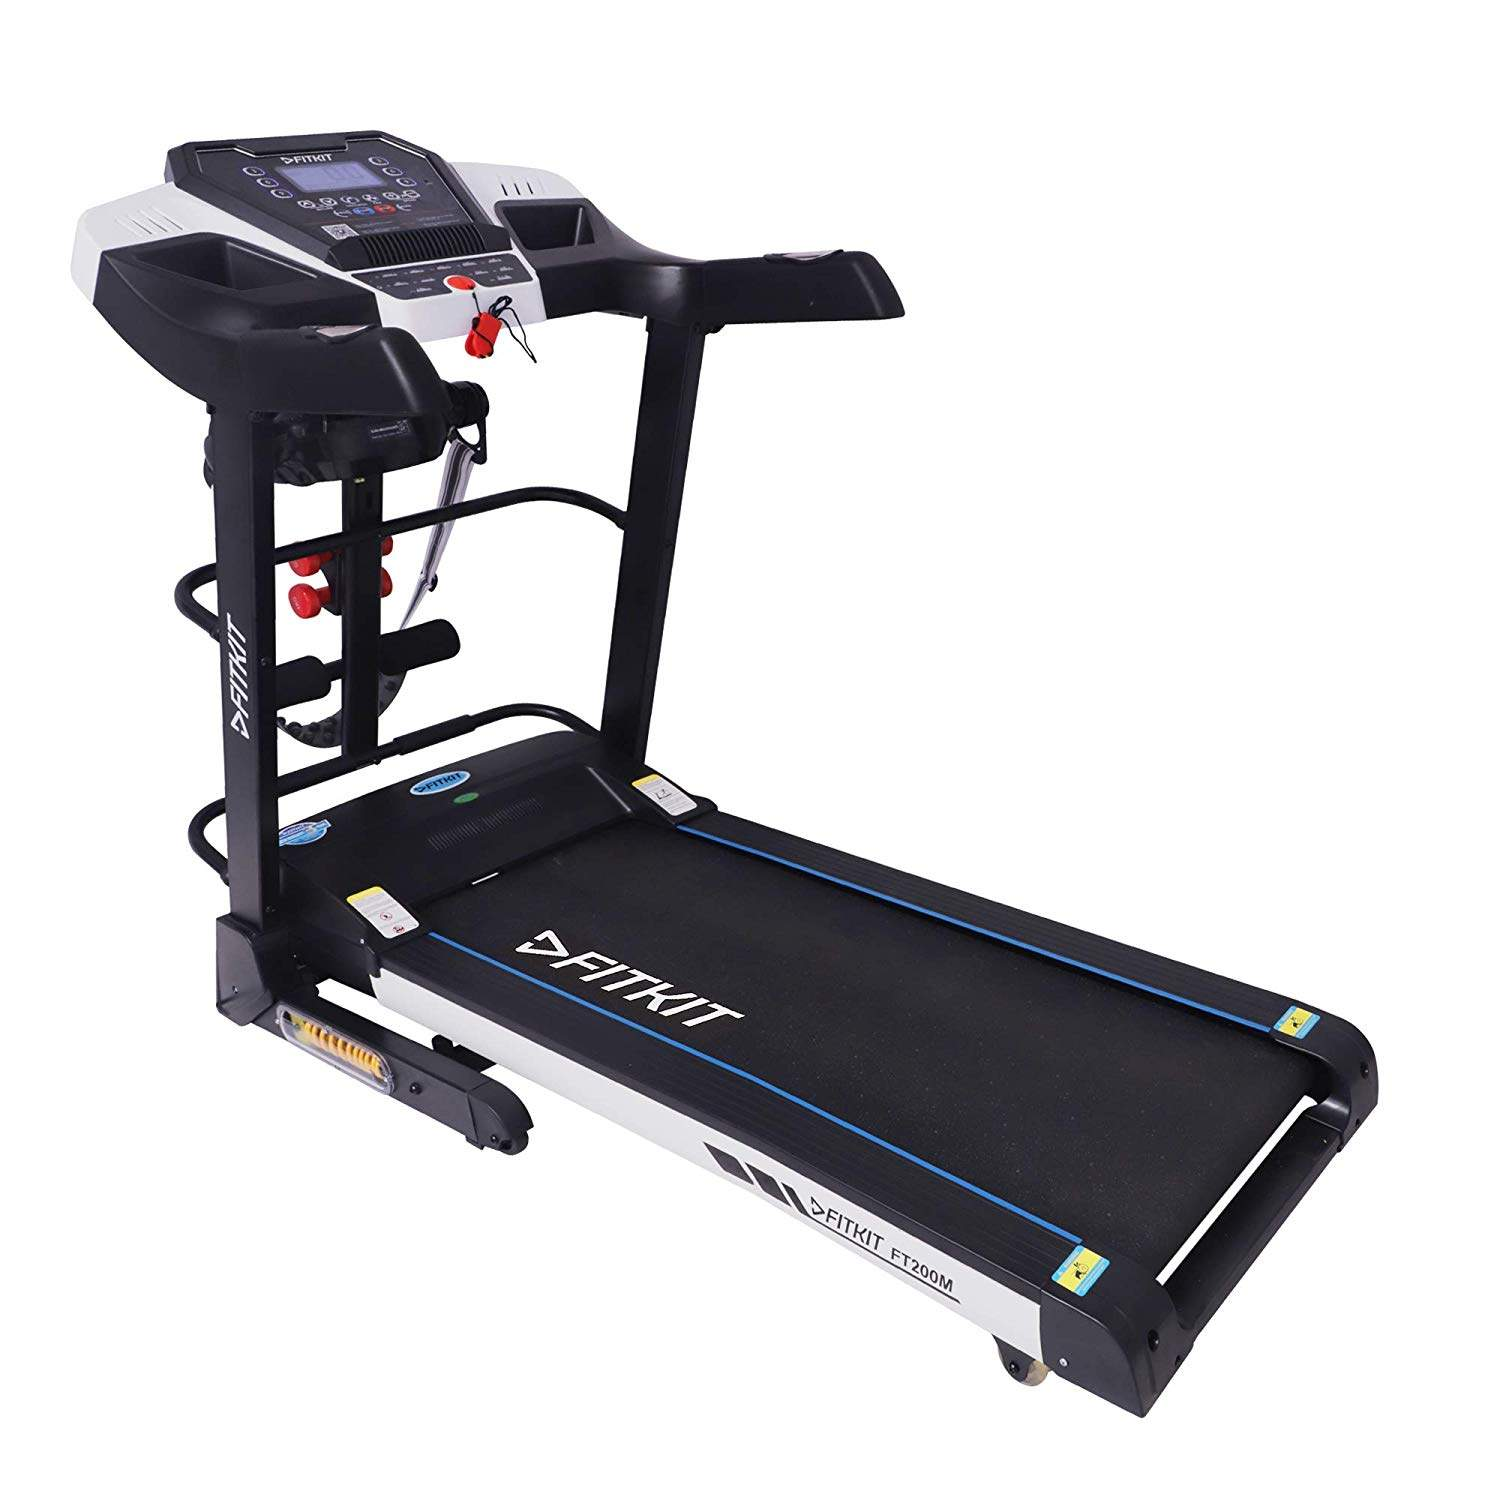 Fitkit FT200 Series Motorized Treadmill With Auto Lubrication And Auto Inclination (Free Installation)